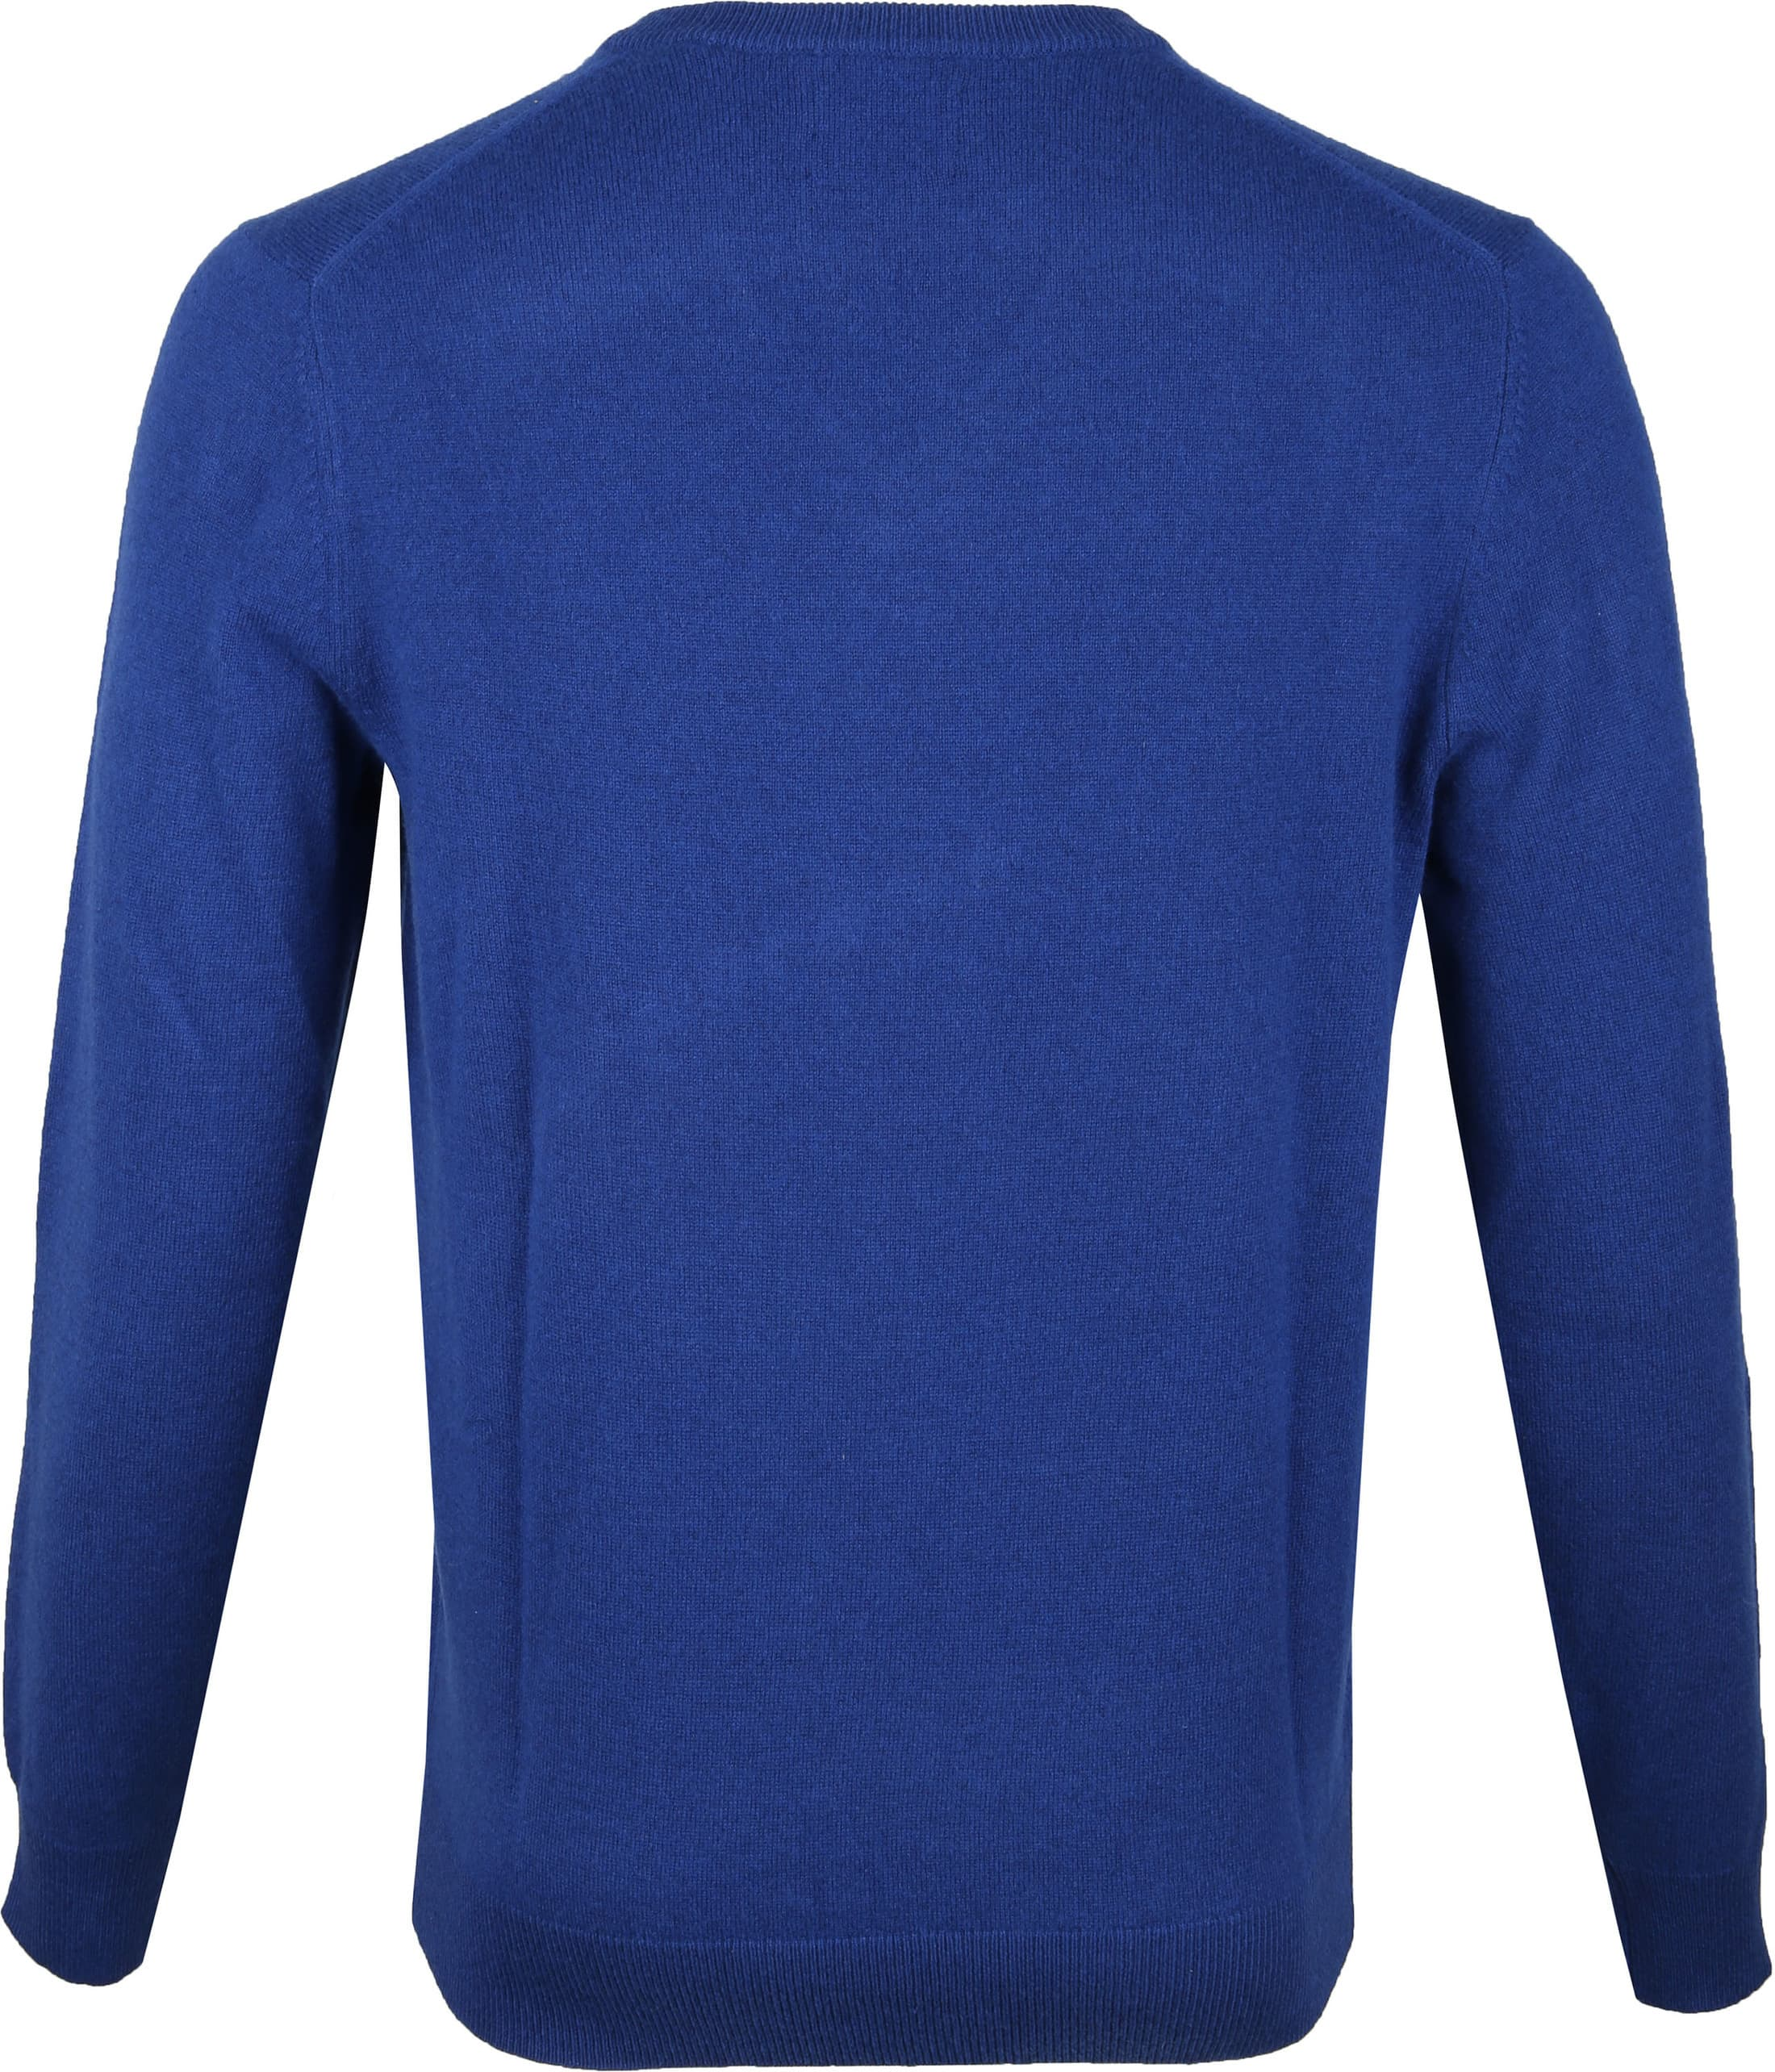 Gant Lambswool Pullover Blue foto 3